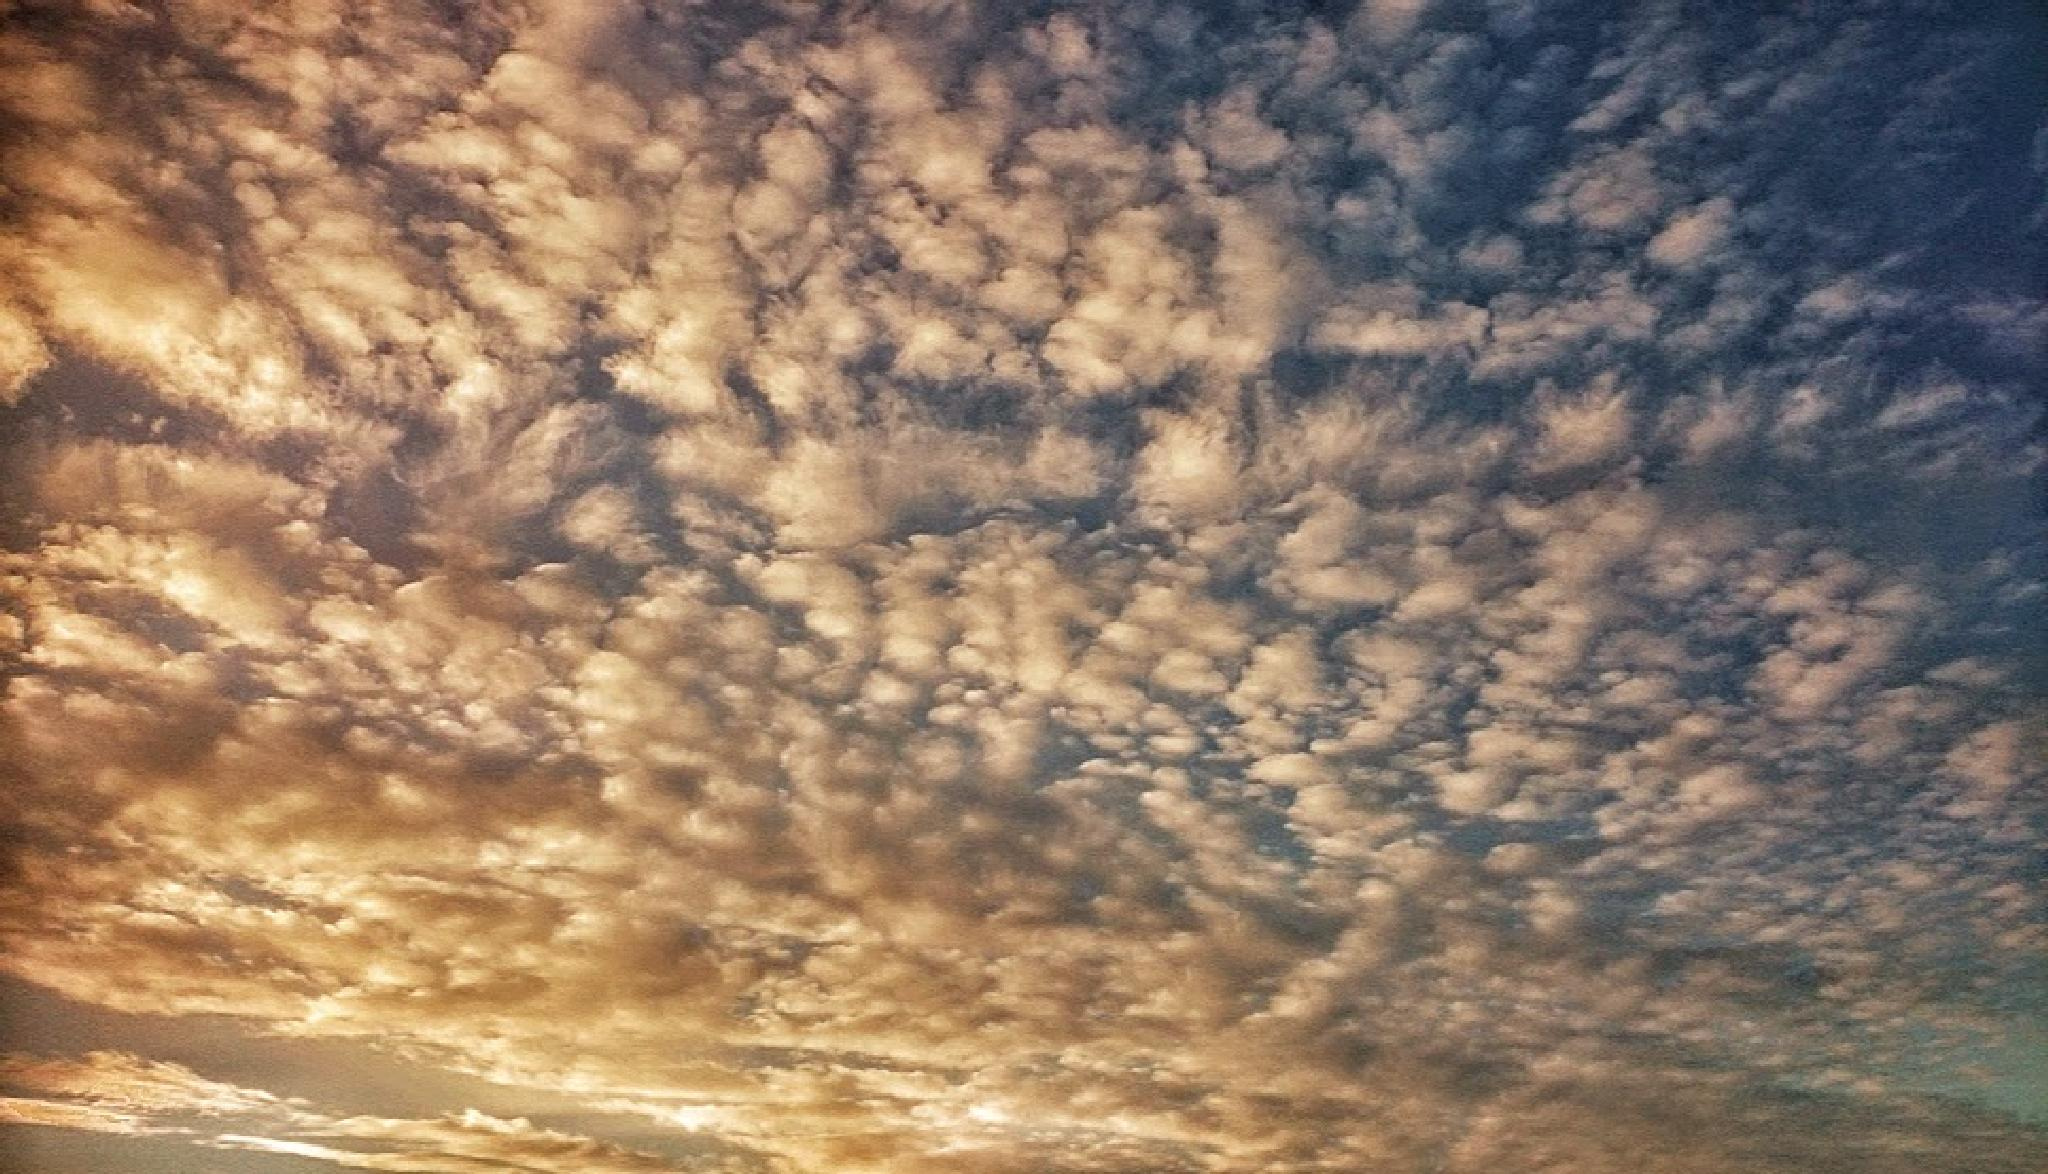 Clouds 2 by geoff richards